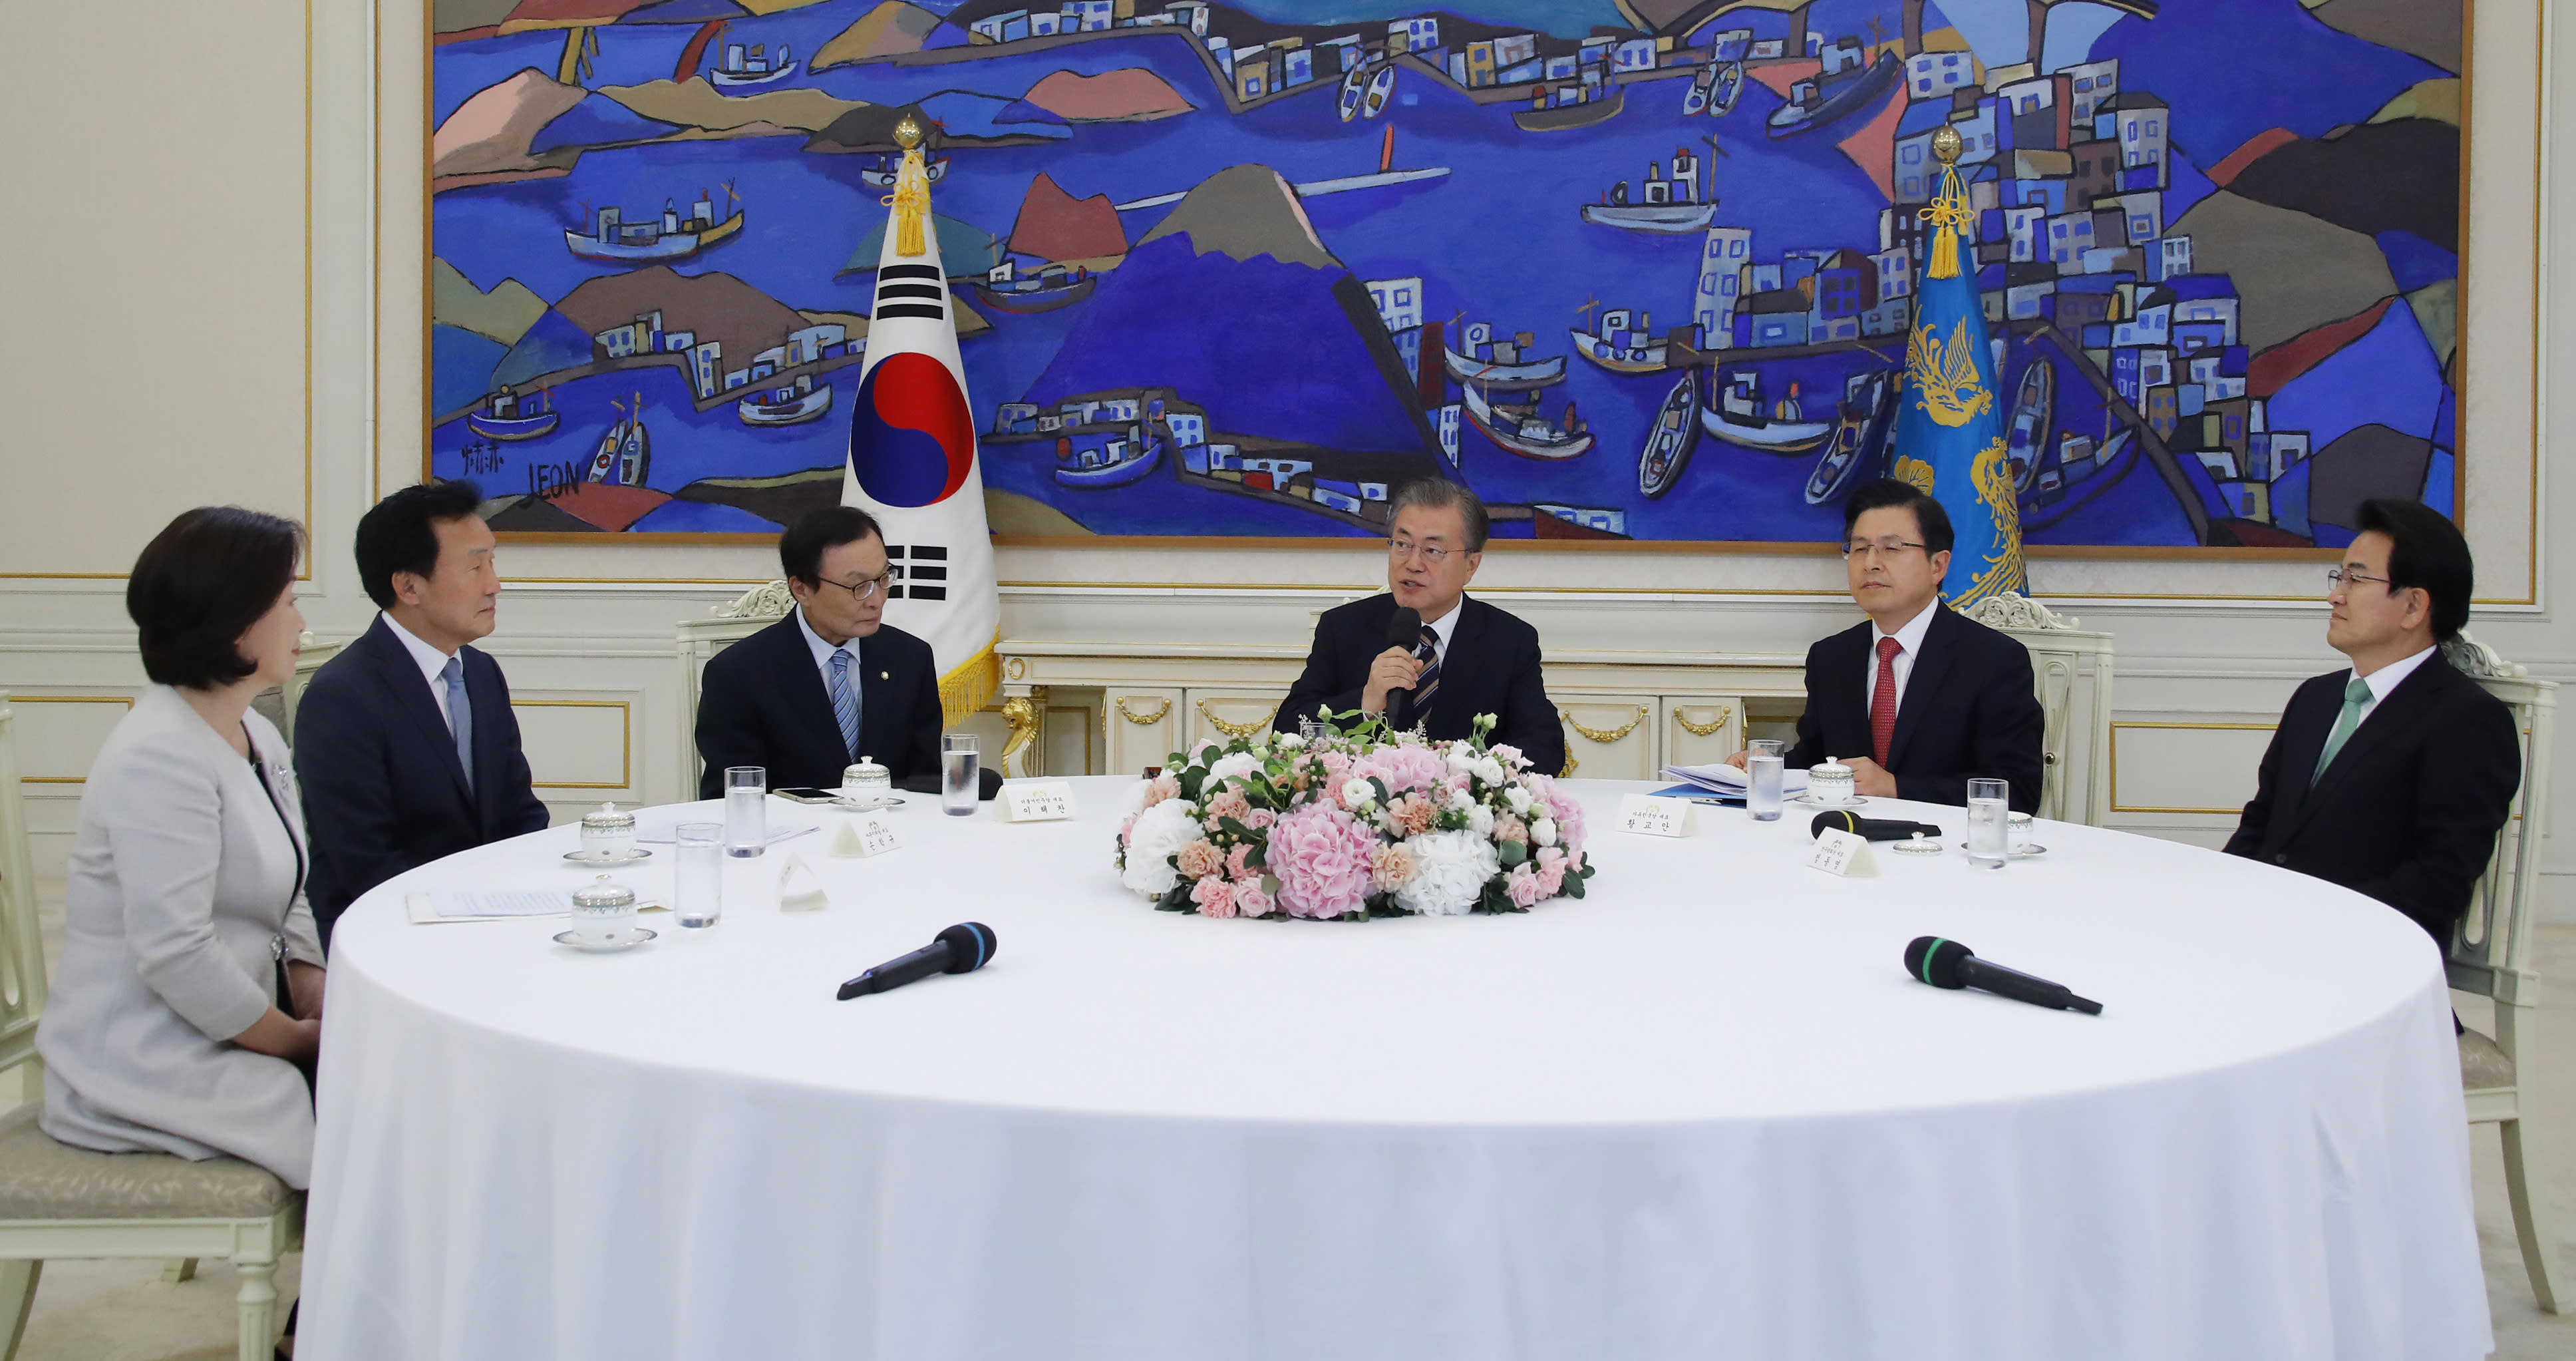 South Korean President Moon Jae-in, third from right, speaks during a meeting with ruling and opposition party leaders to talk about an ongoing South Korea-Japan trade conflict at the presidential Blue House in Seoul, South Korea, Thursday, July 18, 2019. (Bee Jae-man/Yonhap via AP)